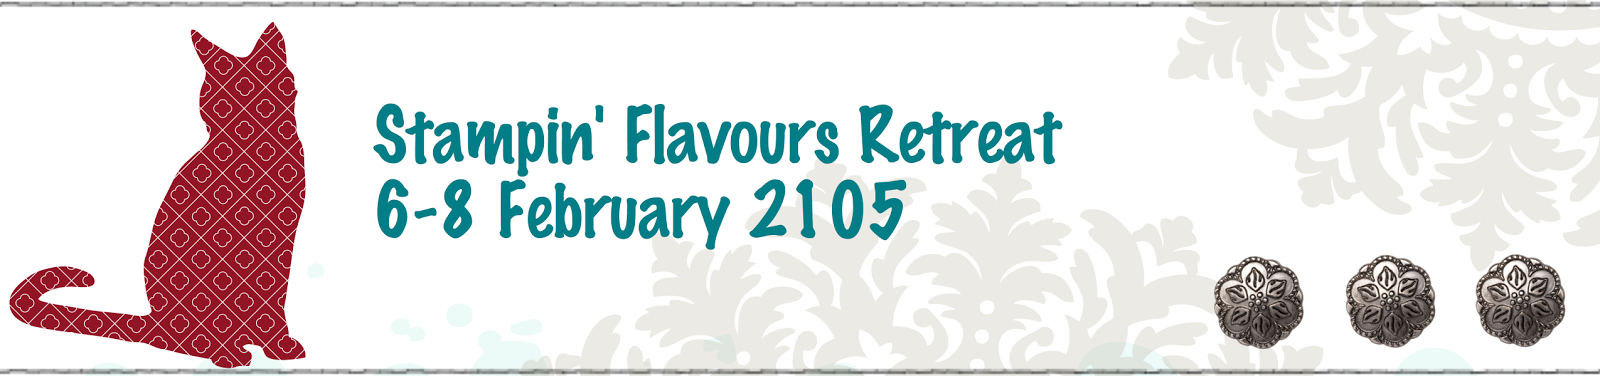 Stampin' Flavours Retreat - 5-7 February 2105